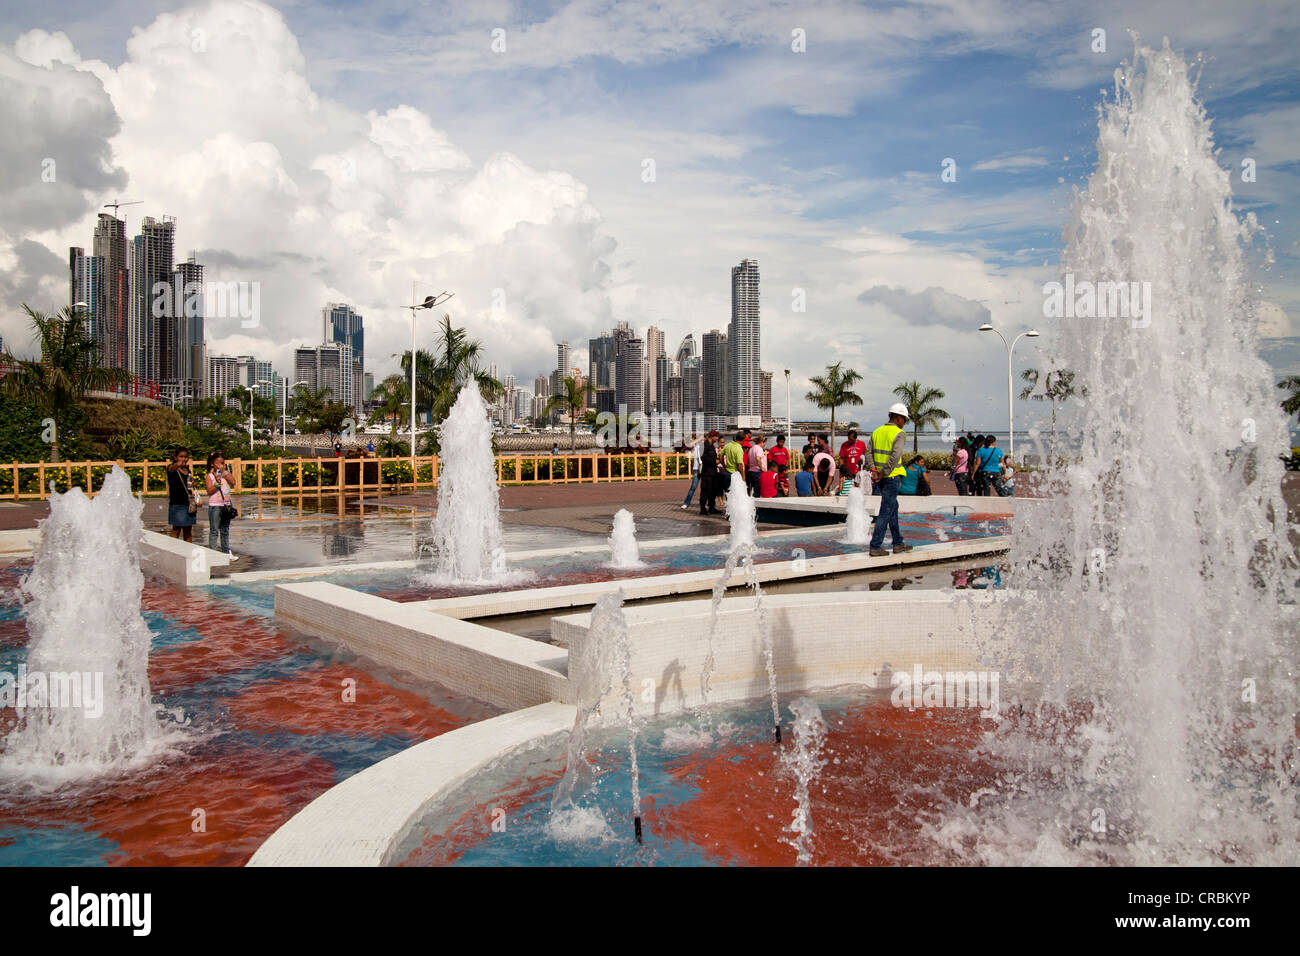 Fountains on the refurbished seafront promenade of Cinta Costera and the skyline of Panama City, Panama, Central - Stock Image